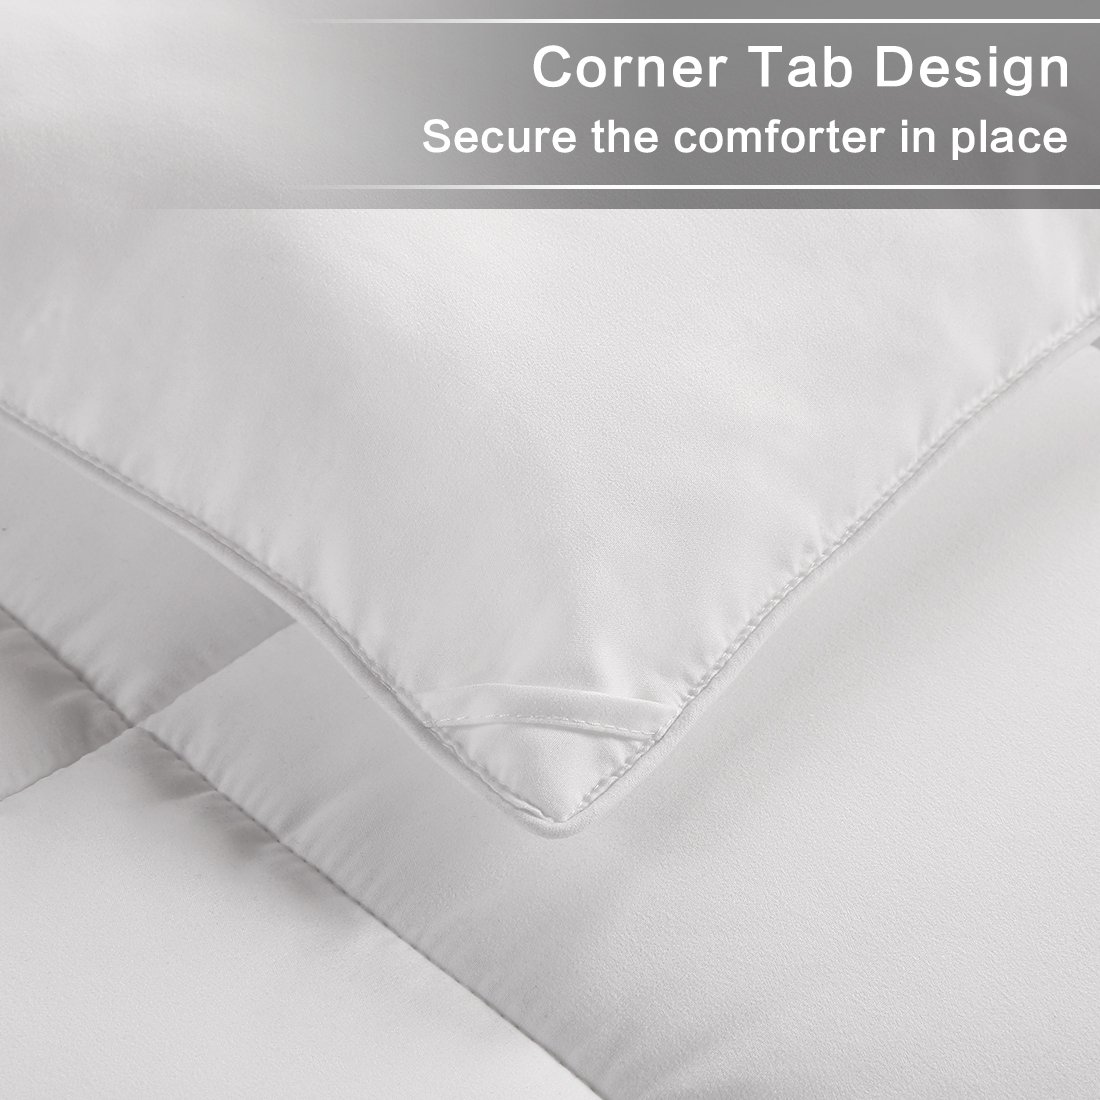 WARM HARBOR Queen All Season White Down Alternative Quilted Comforter and Duvet Insert - Luxury Hotel Collection Premium Lightweight(Queen,White) by WARM HARBOR (Image #5)